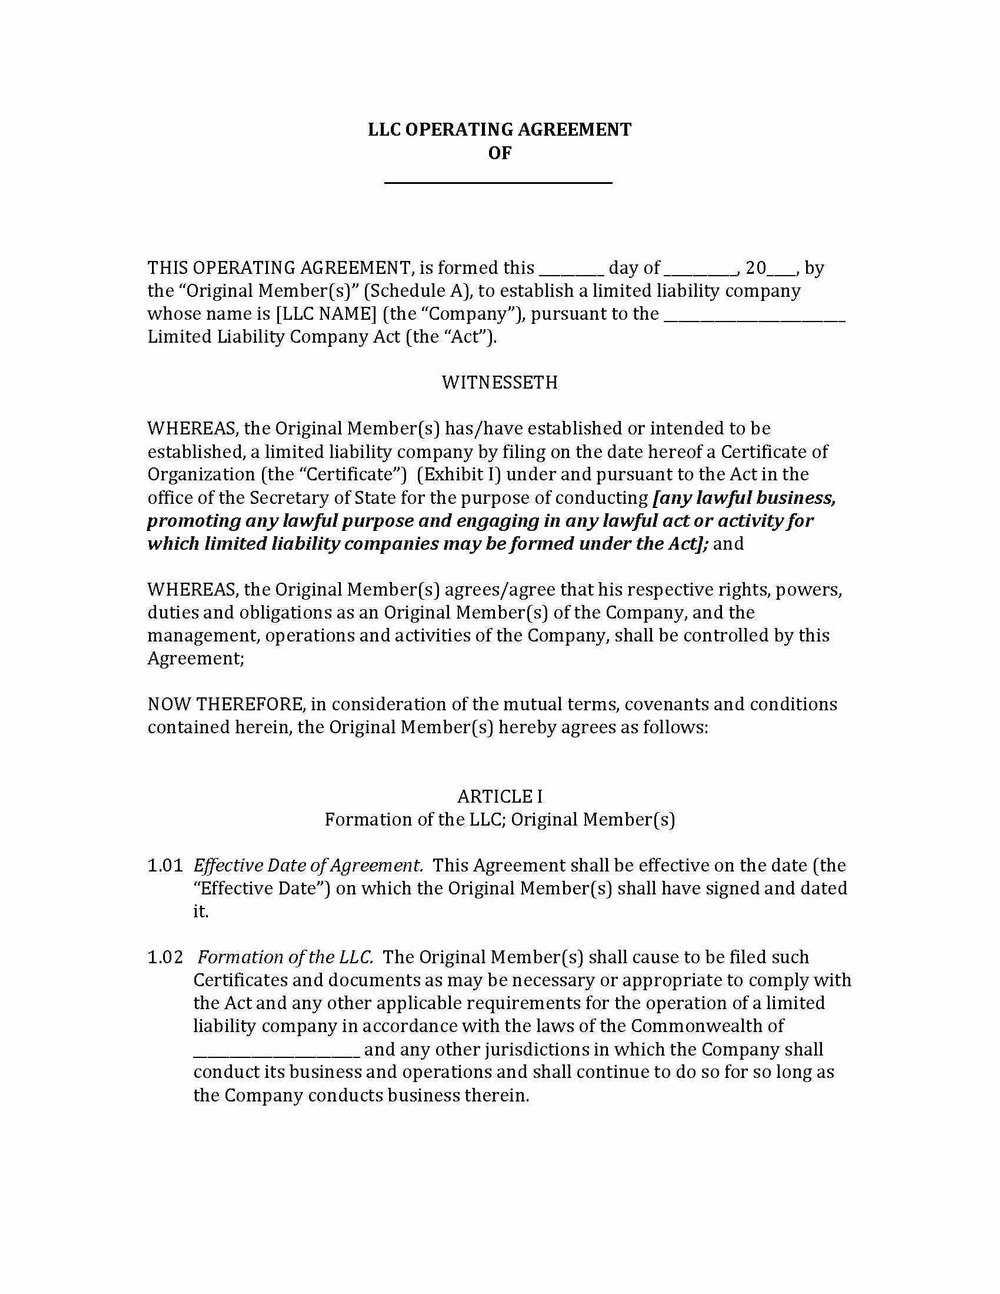 Single Member Llc Resolution Template